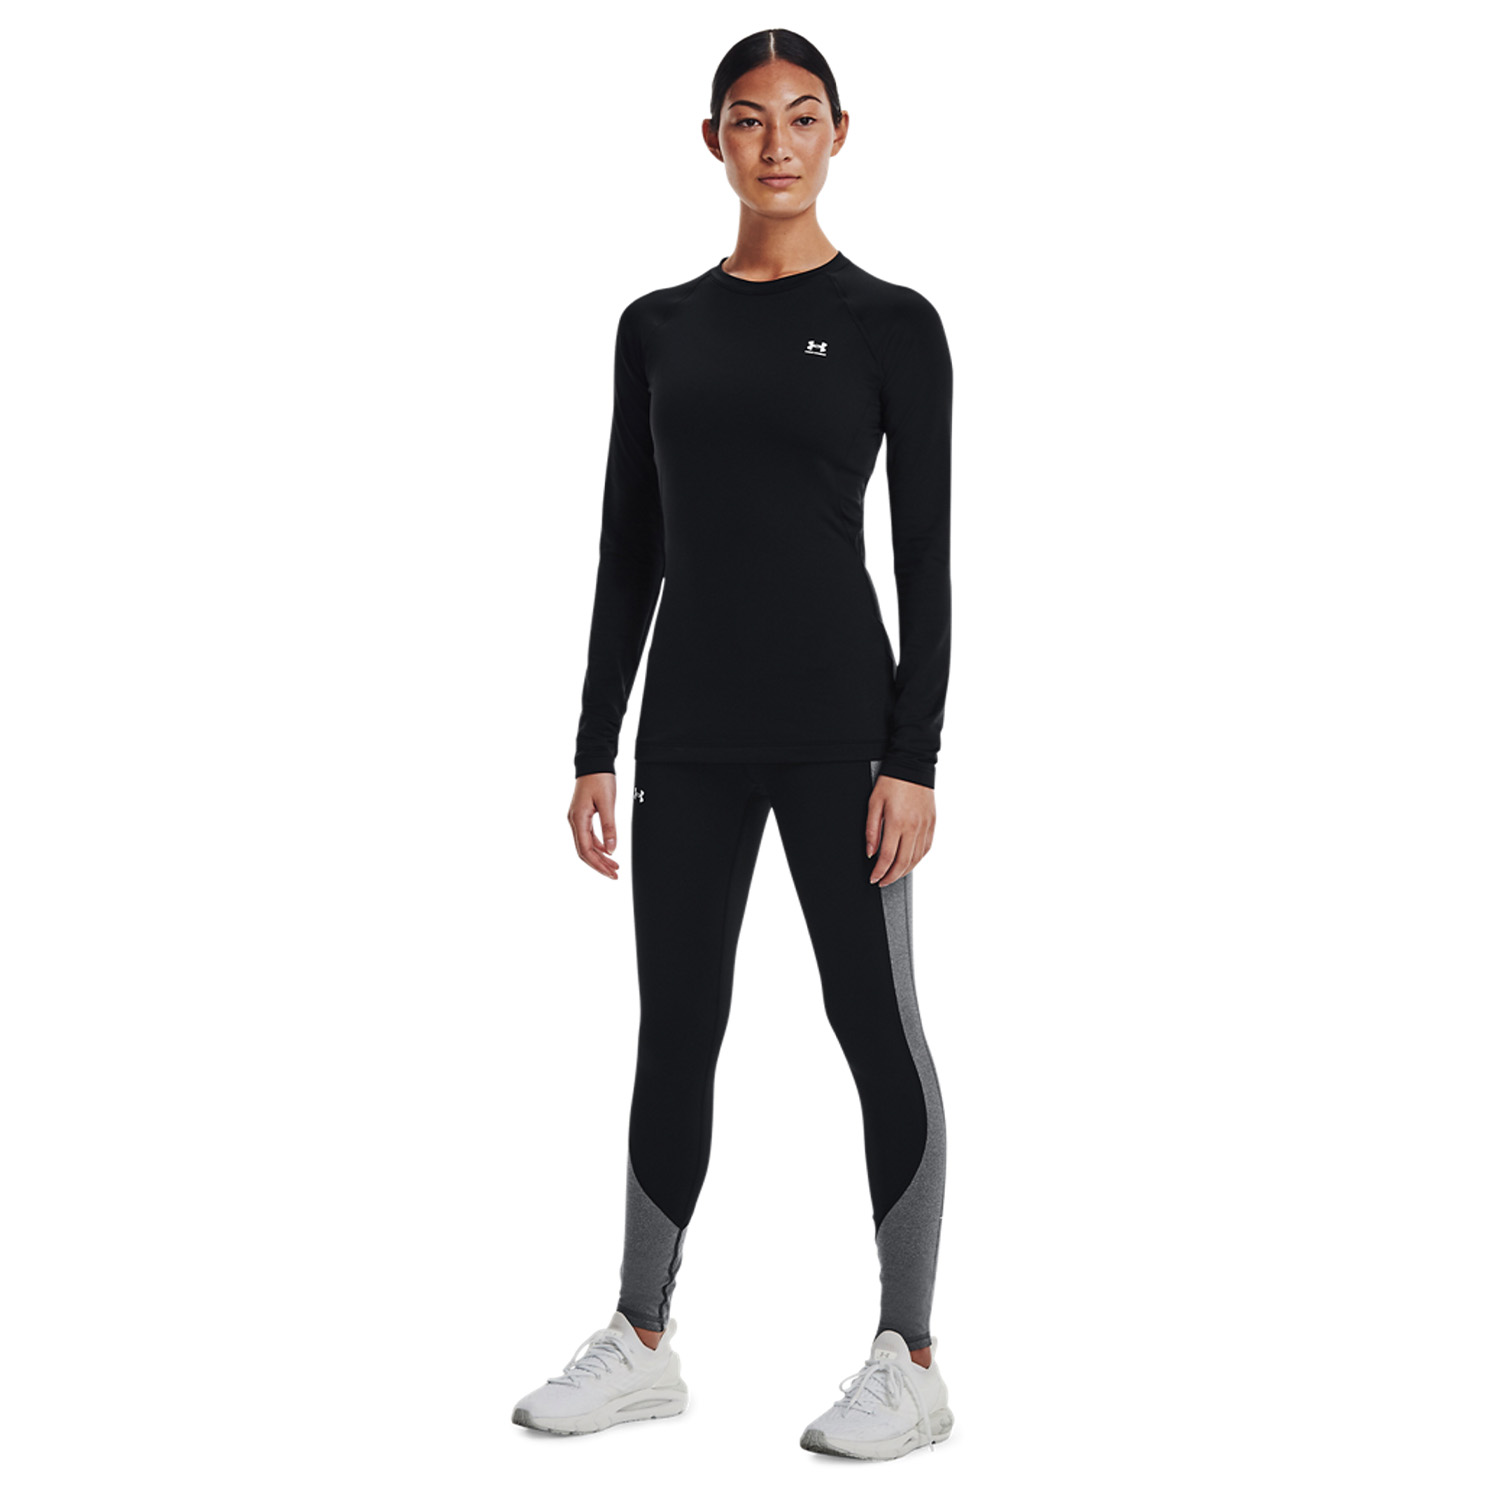 Under Armour Cozy Blocked Tights - Black/White